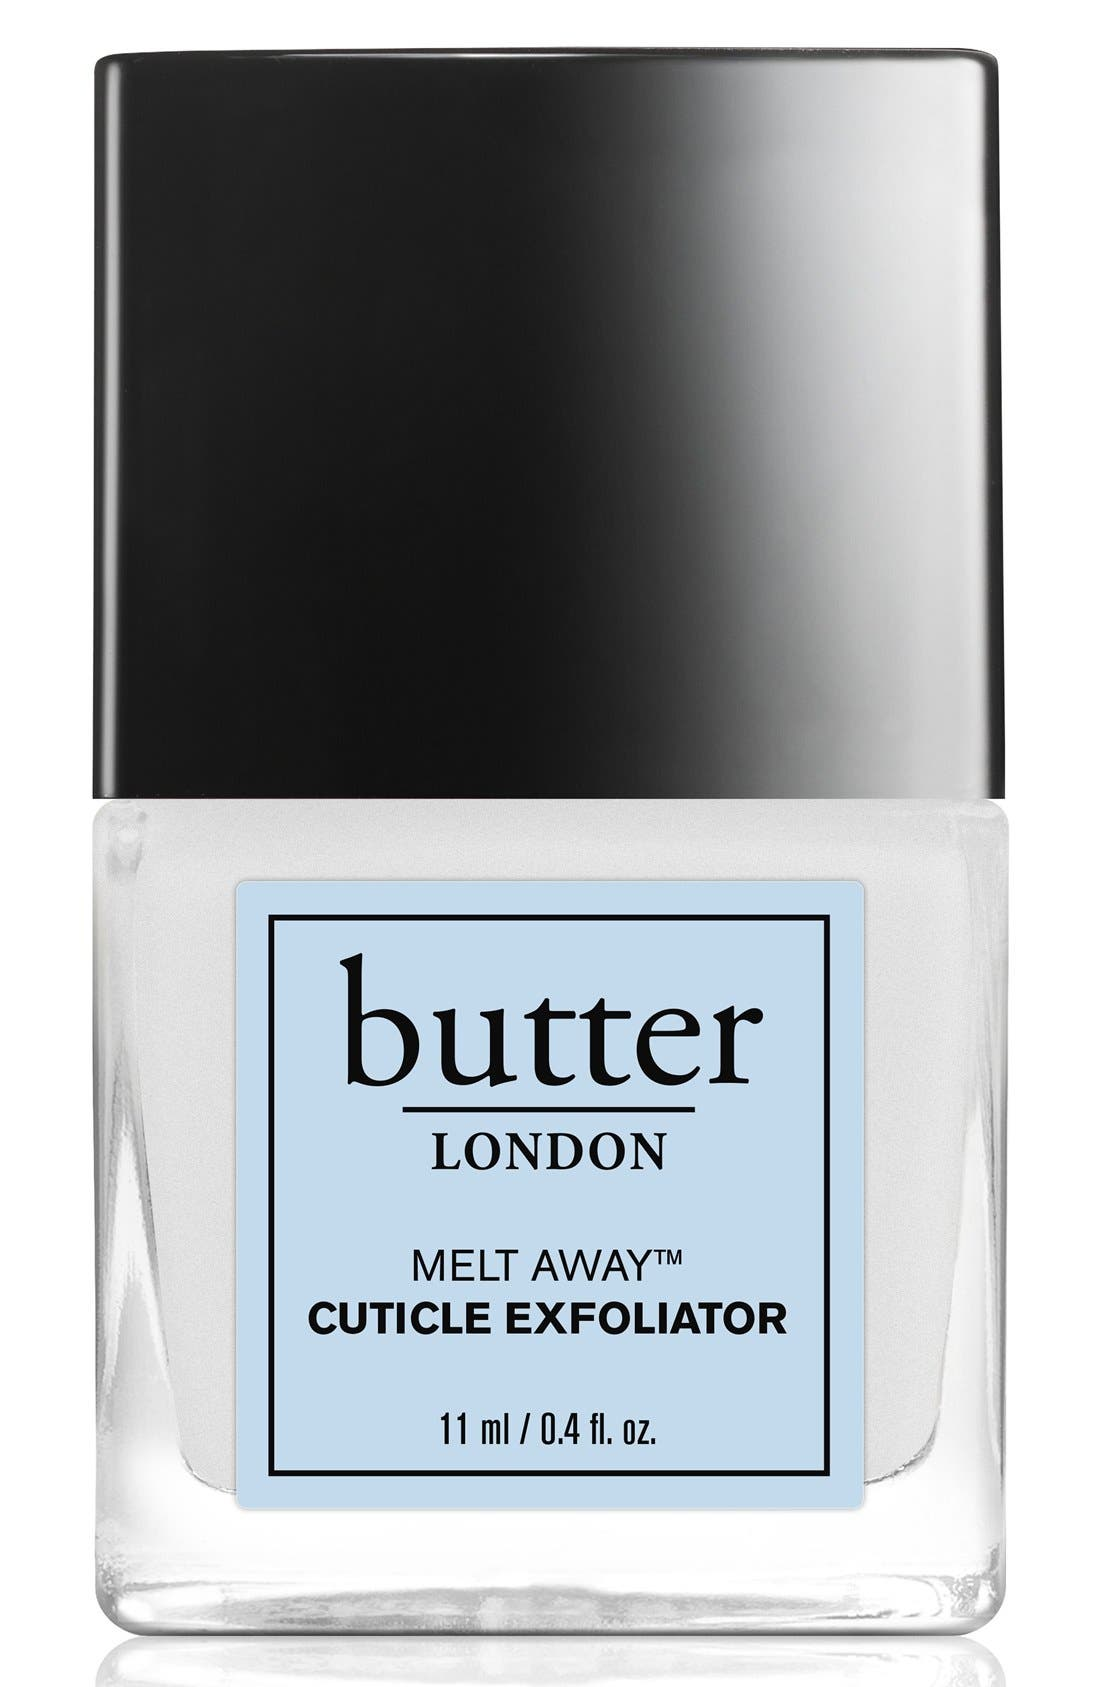 butter LONDON 'Melt Away™' Cuticle Exfoliator